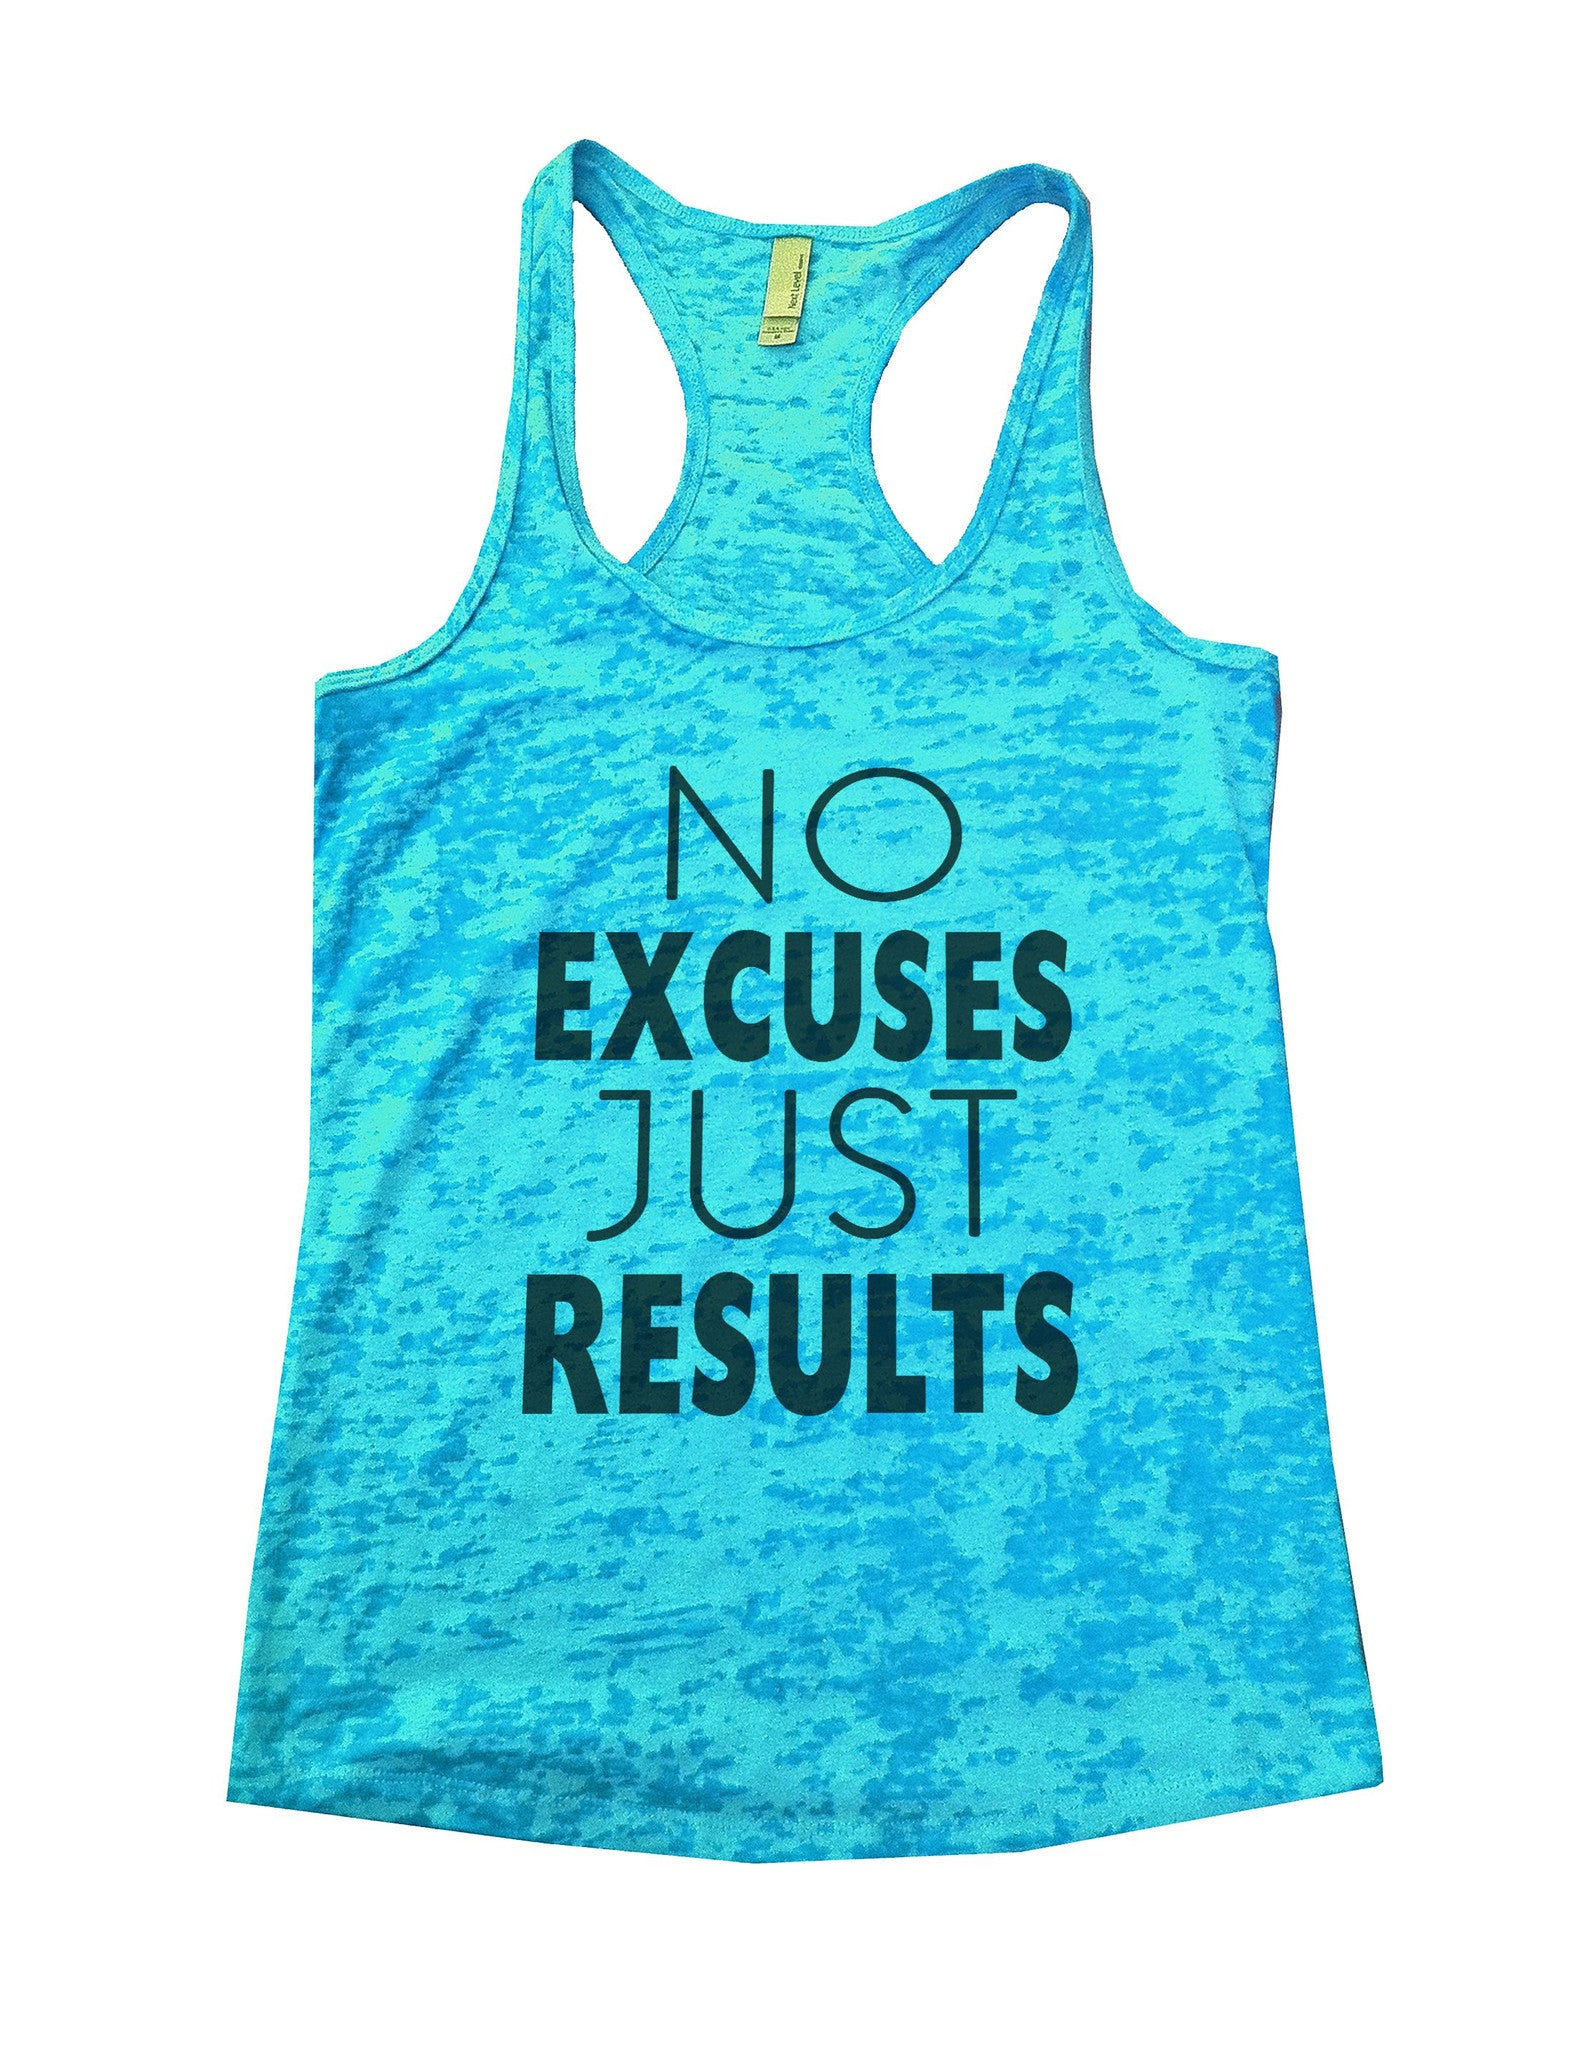 No Excuses Just Results Burnout Tank Top By BurnoutTankTops.com - 747 - Funny Shirts Tank Tops Burnouts and Triblends  - 5